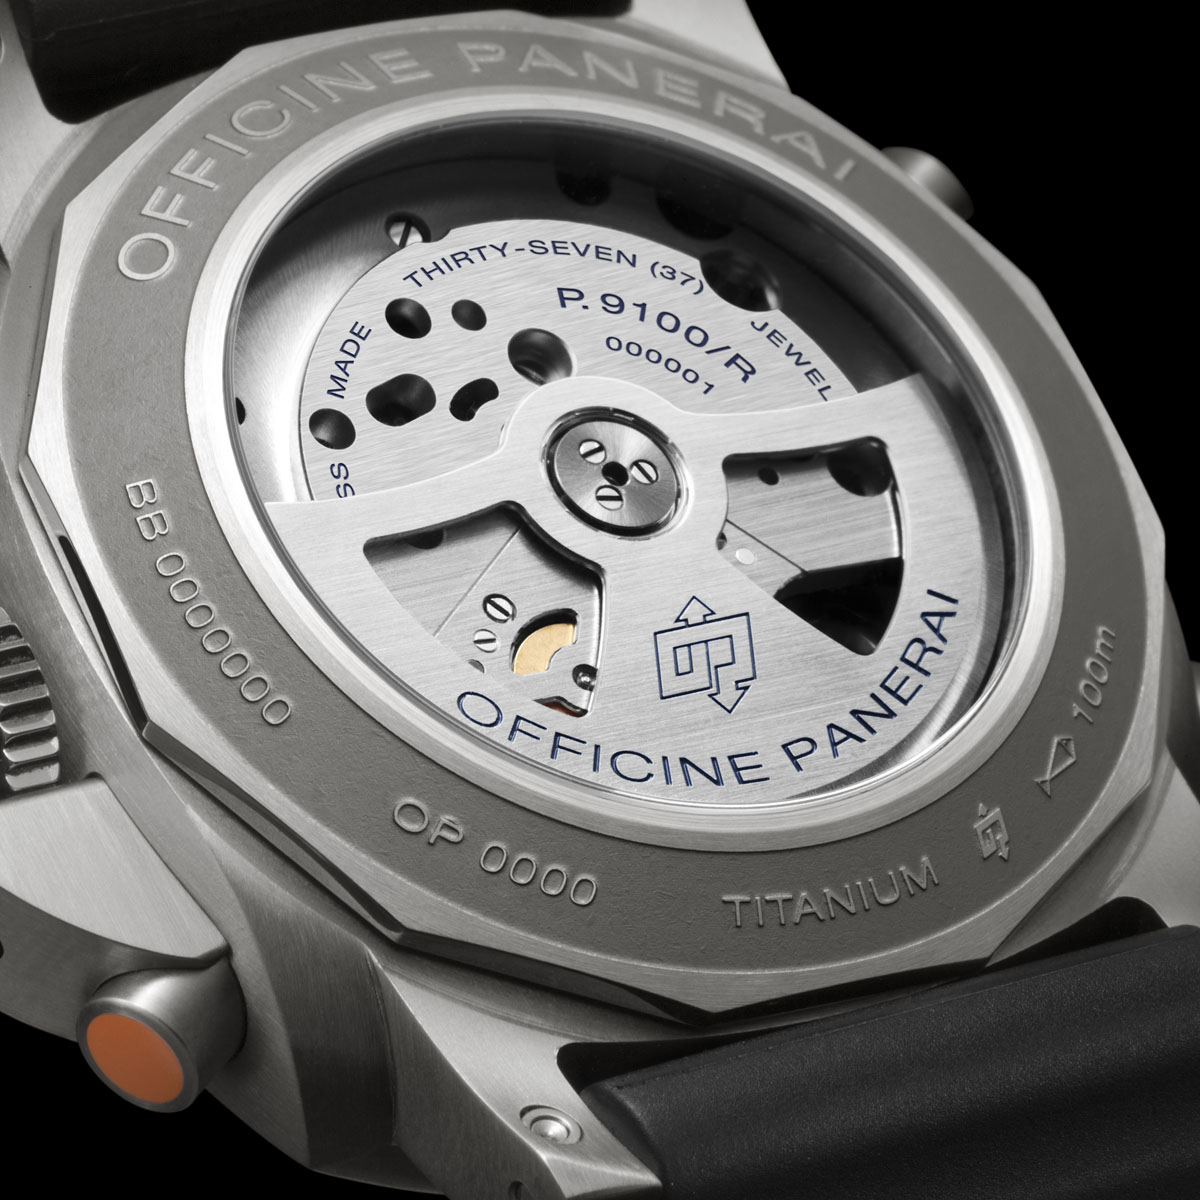 Panerai Luminor 1950 Regatta 3 Days Chrono Flyback Automatic Titanio - 47MM (PAM00526)